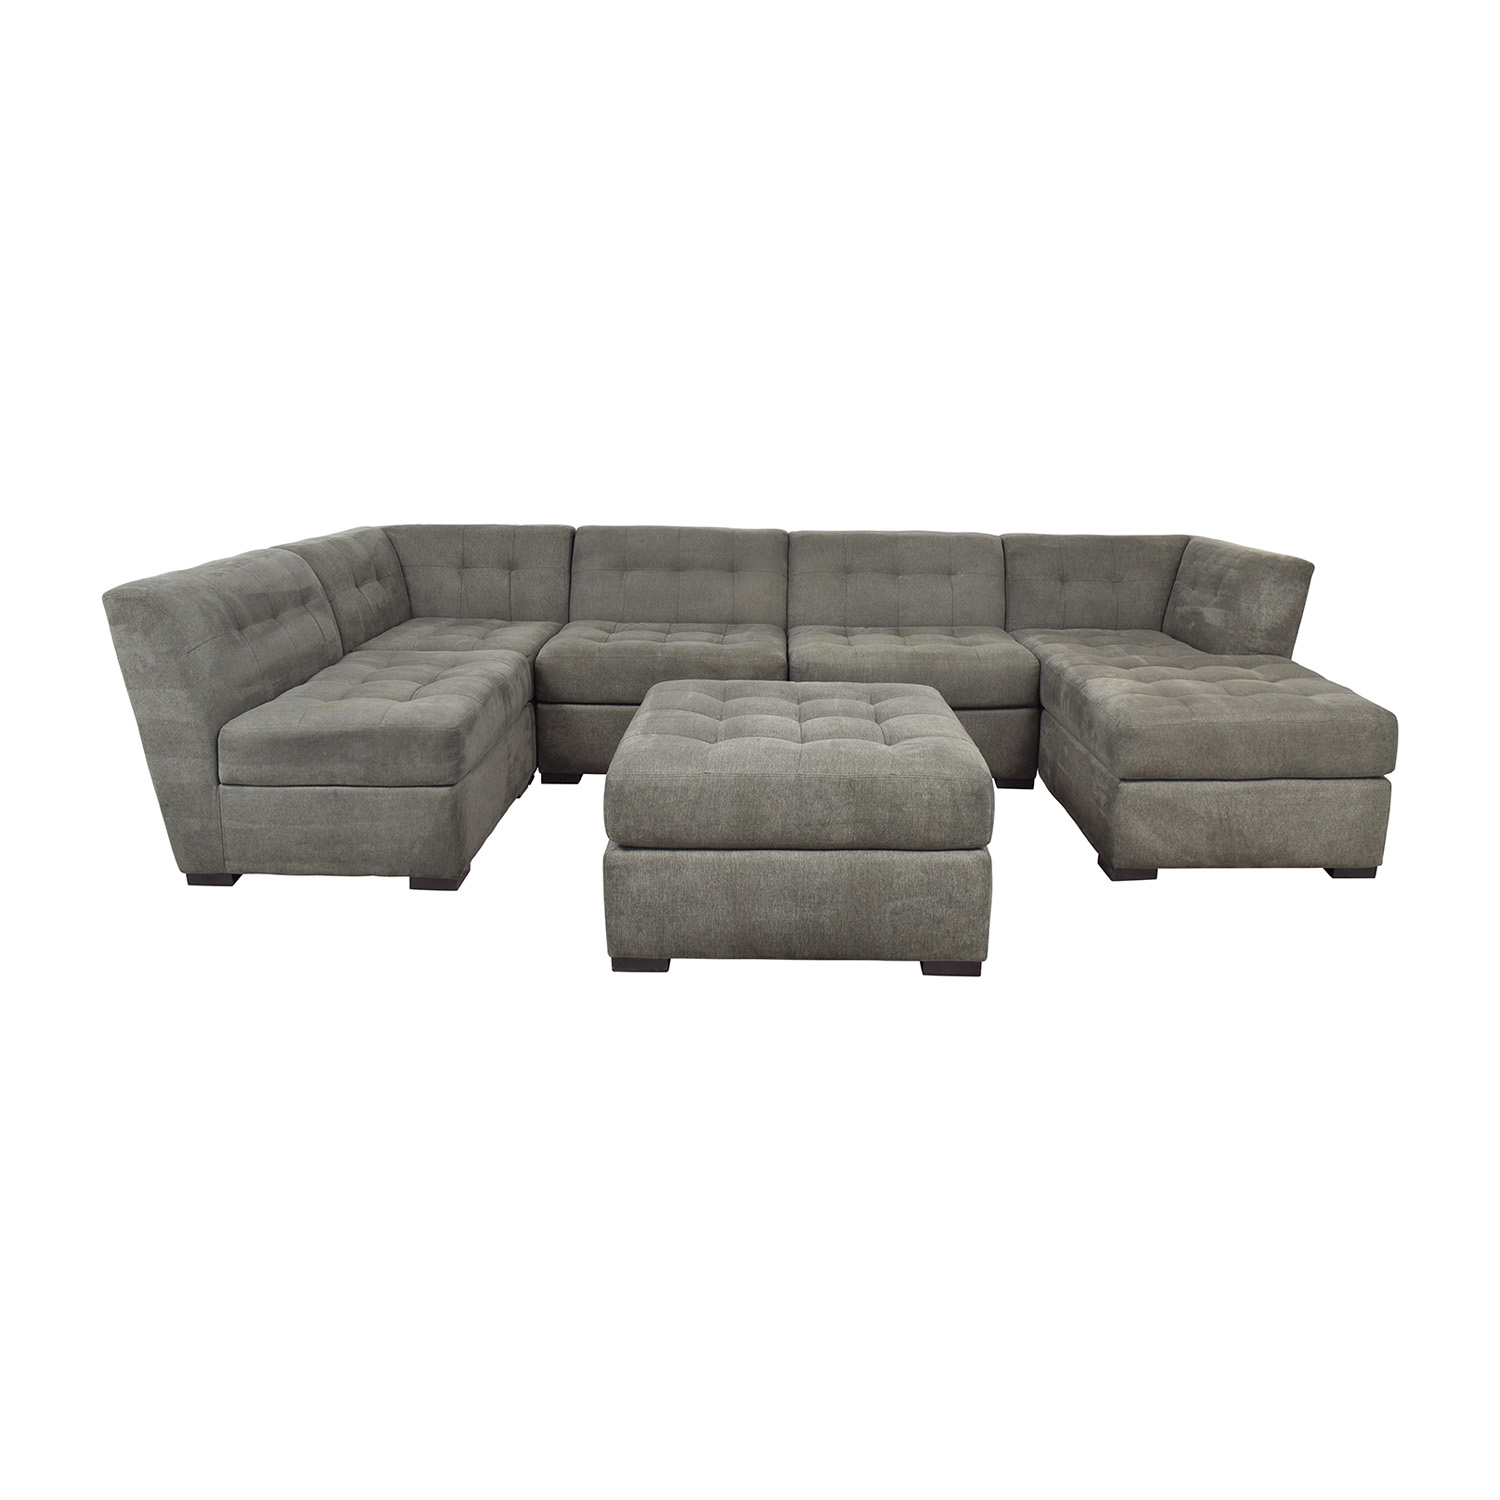 82% OFF - Macy\'s Macy\'s Roxanne II Modular Sectional Sofa with Chaise &  Ottoman / Sofas